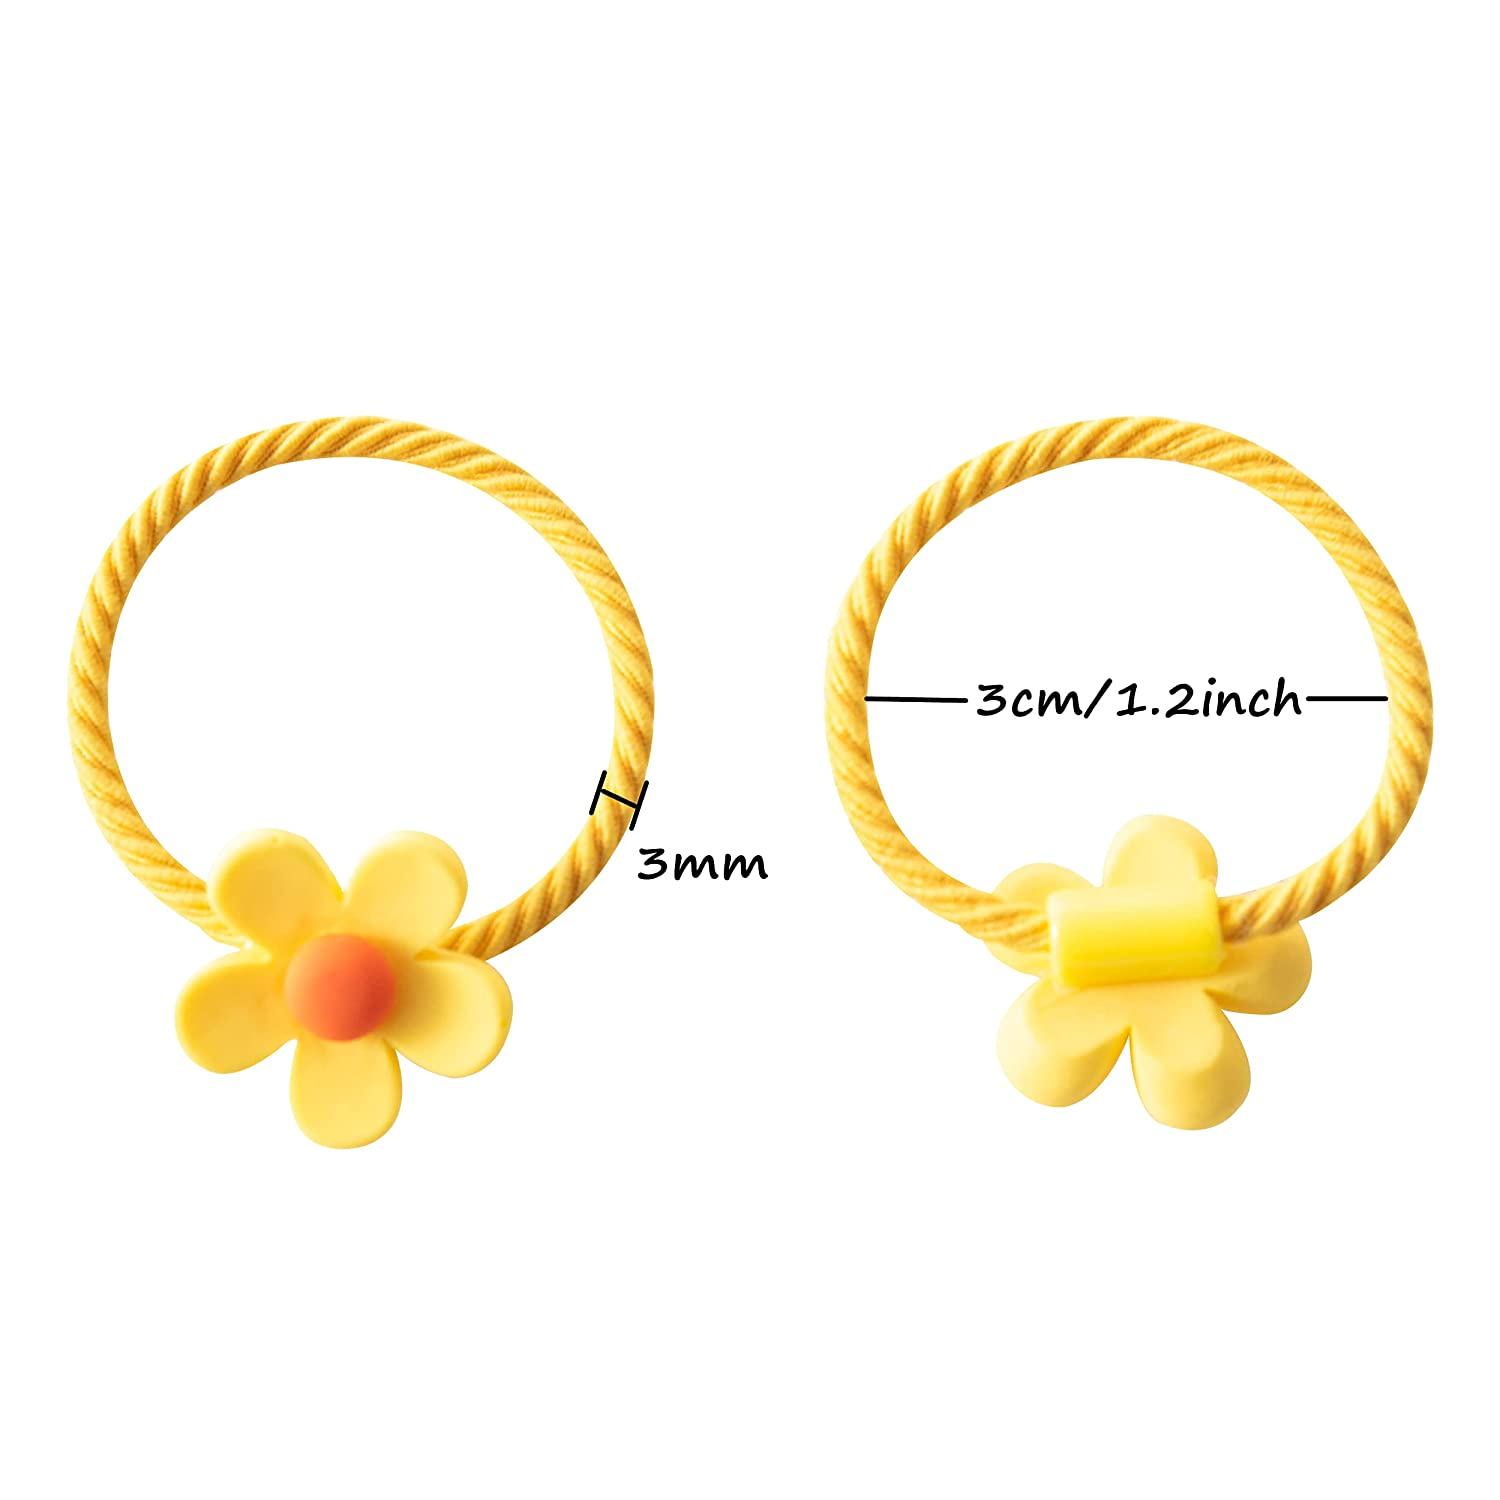 40pcs (20 pairs) Girl's Elastic Hair Ties Rubber Bands Flower and Bows Hair Bands Holders Pigtails Ponytail Hair Accessories for Girls Infants Toddlers Kids Teens and Children